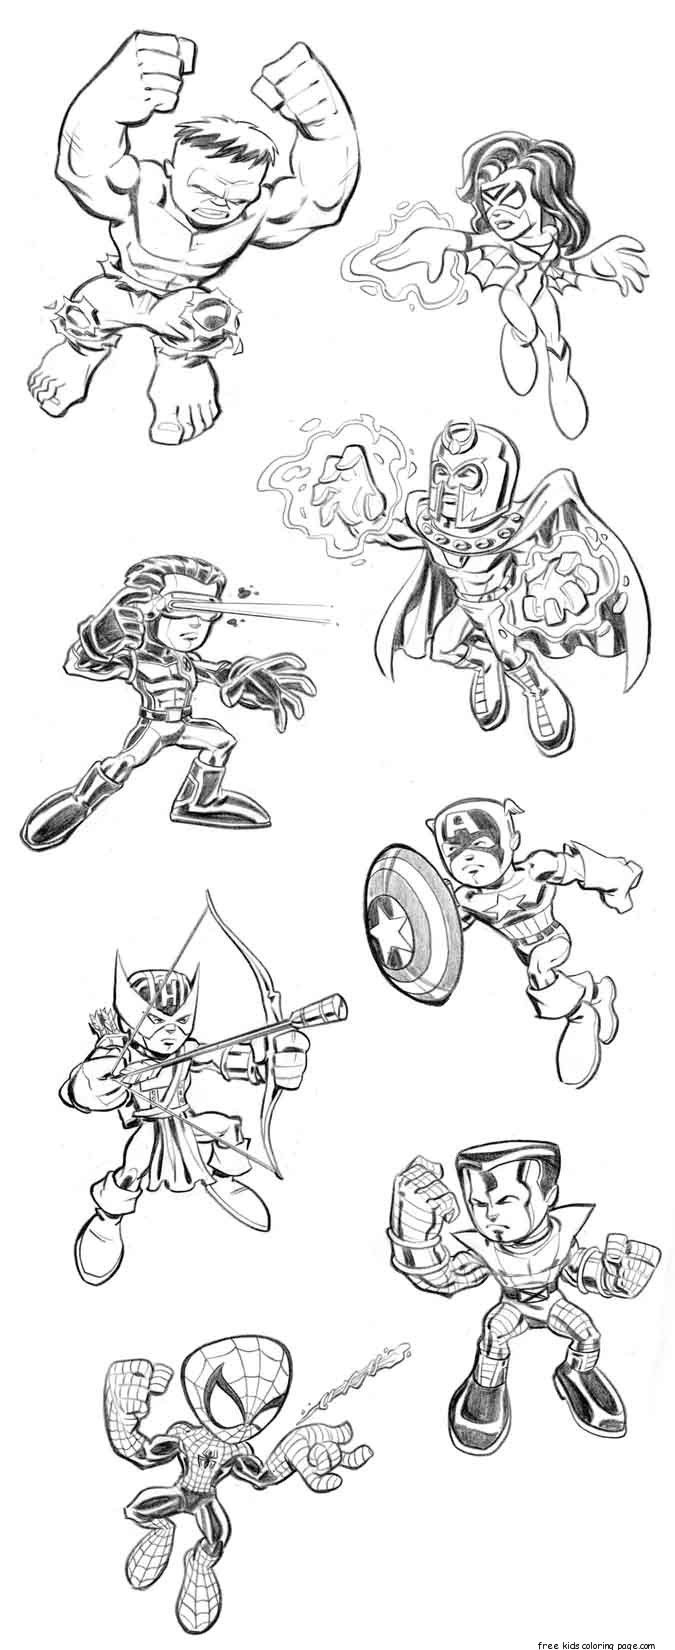 60 best lineart super hero squad marvel images on pinterest